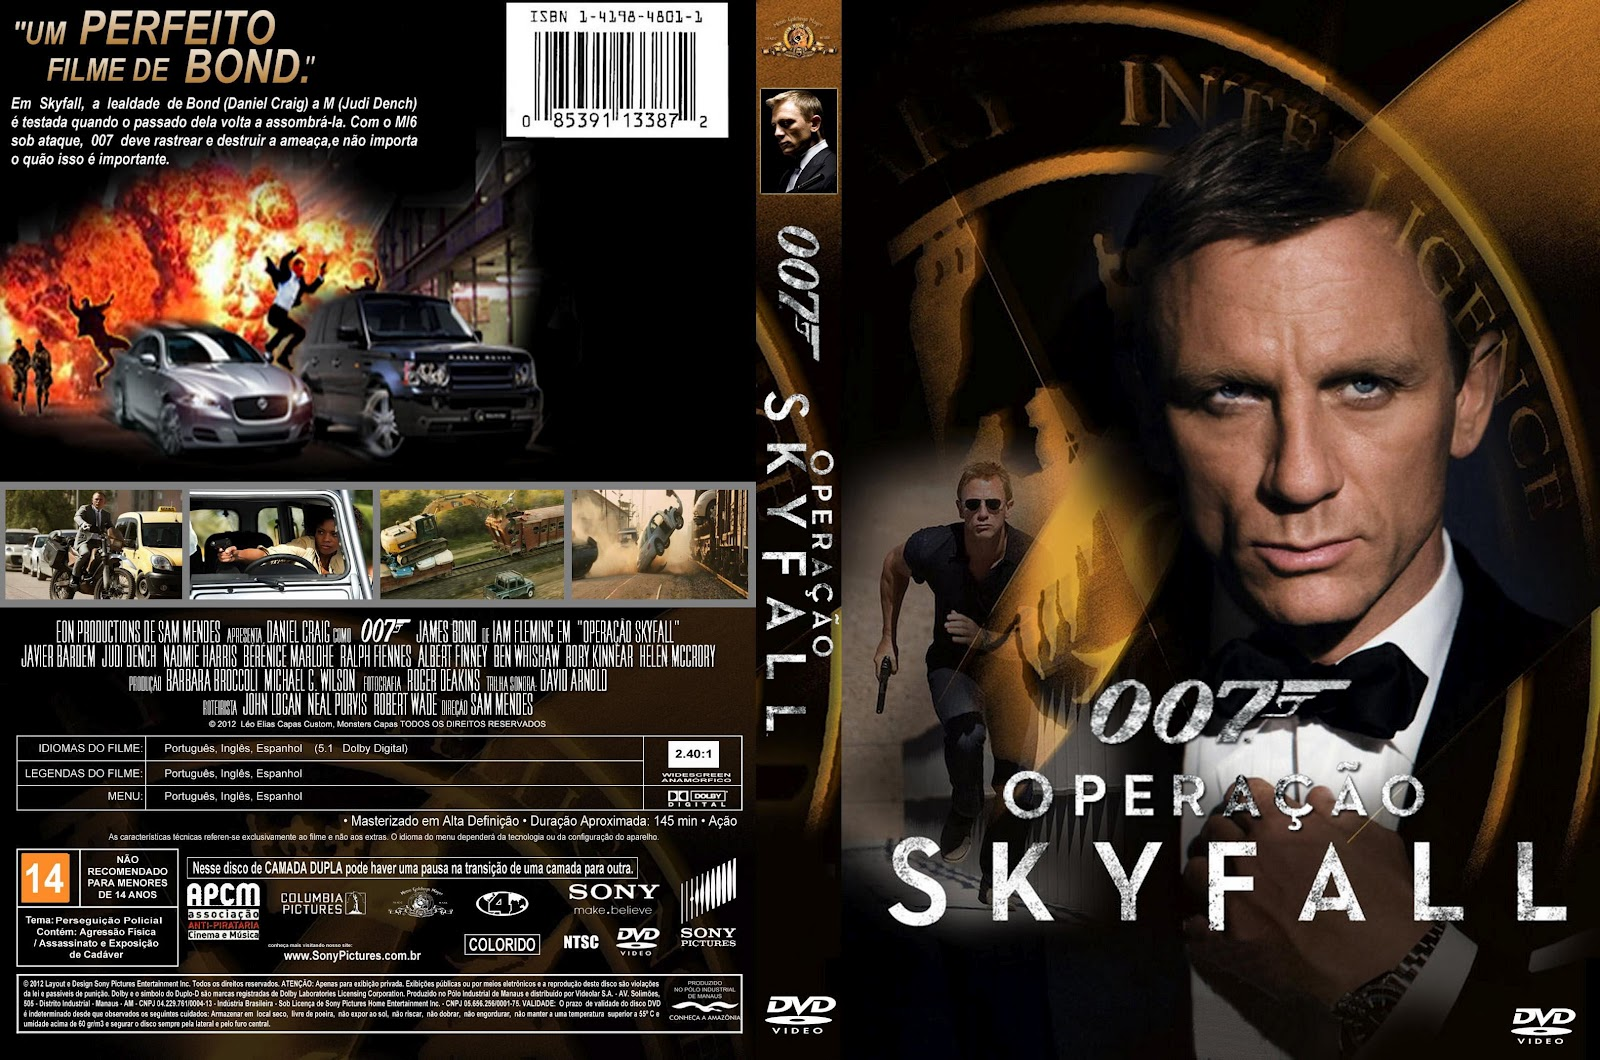 COPA DVD 007 OPE...007 Skyfall Dvd Cover